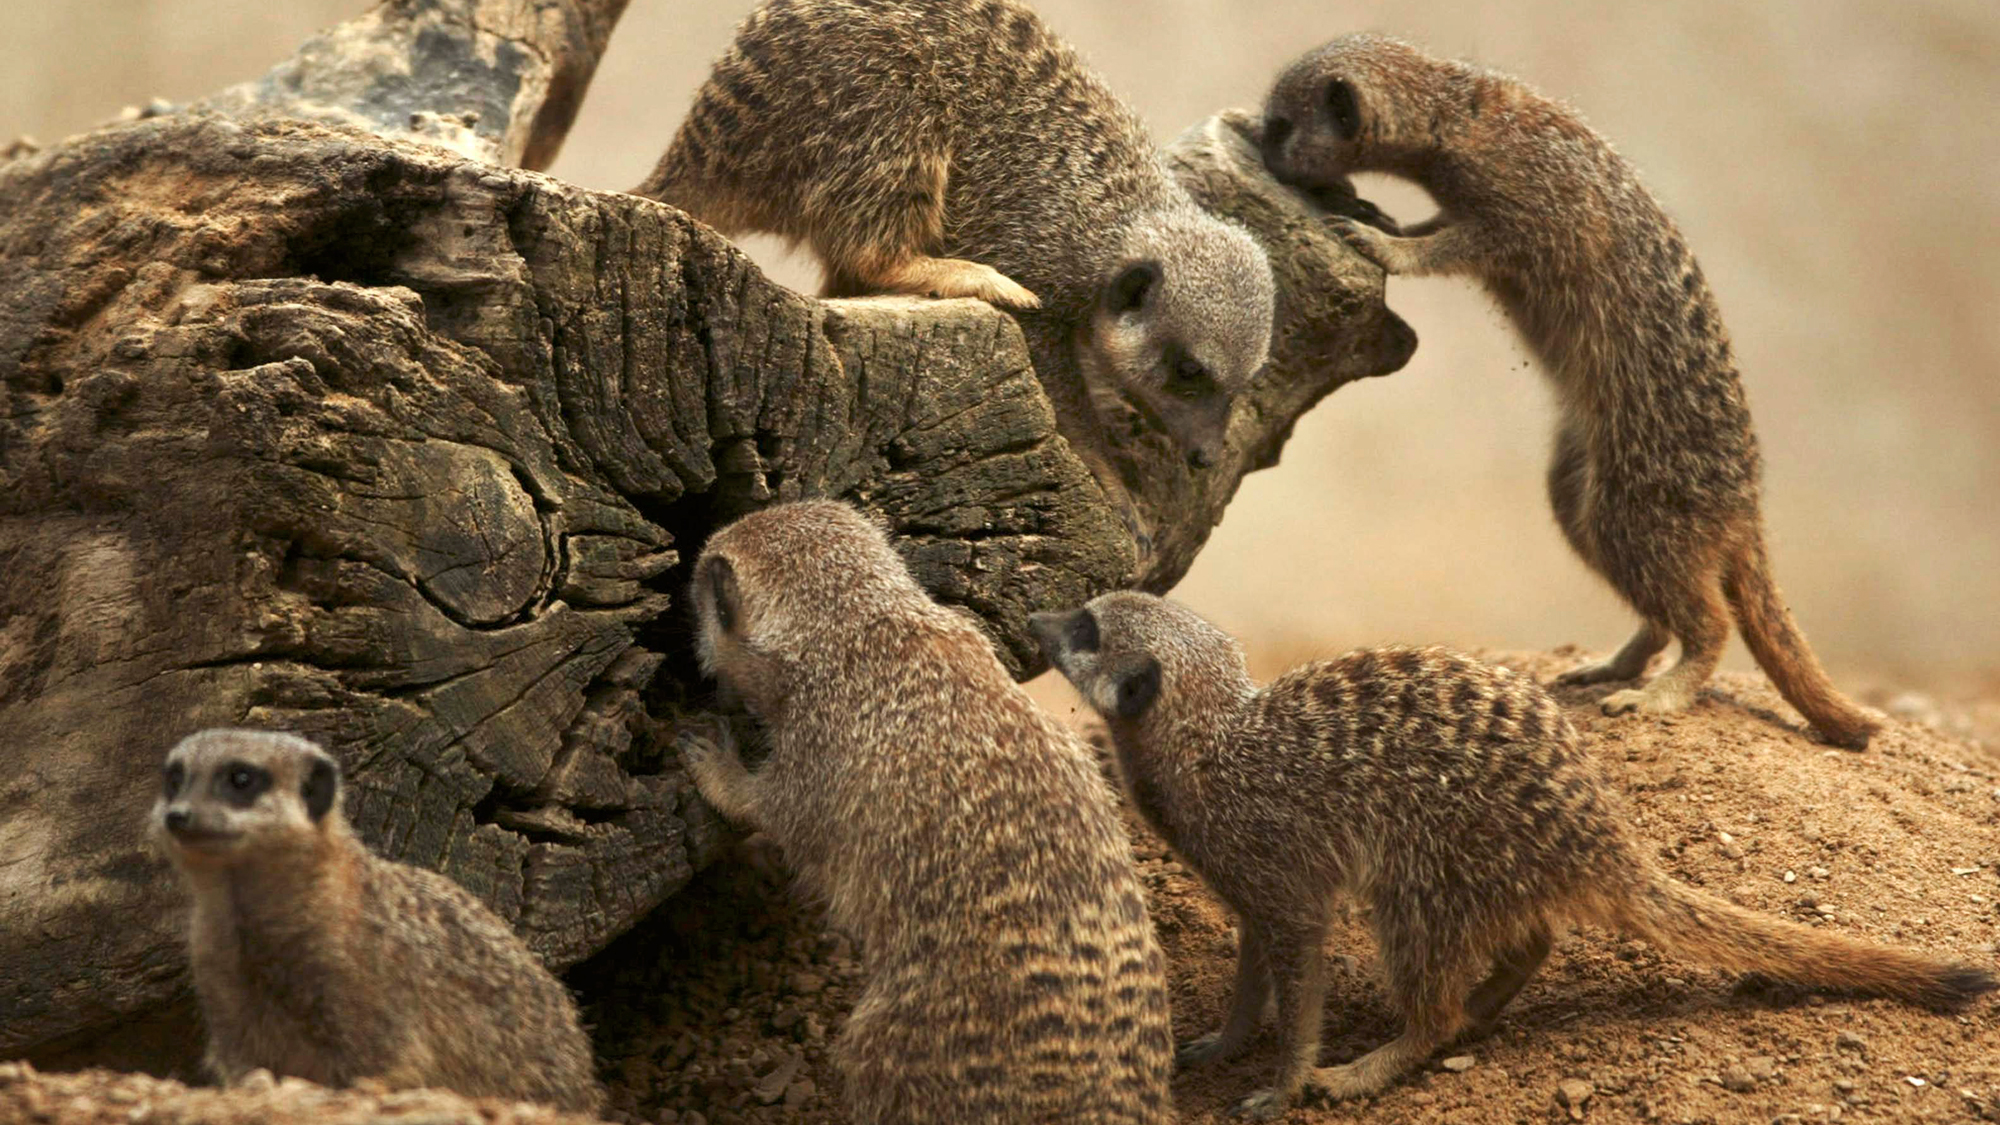 A family of meerkats at ZSL London Zoo